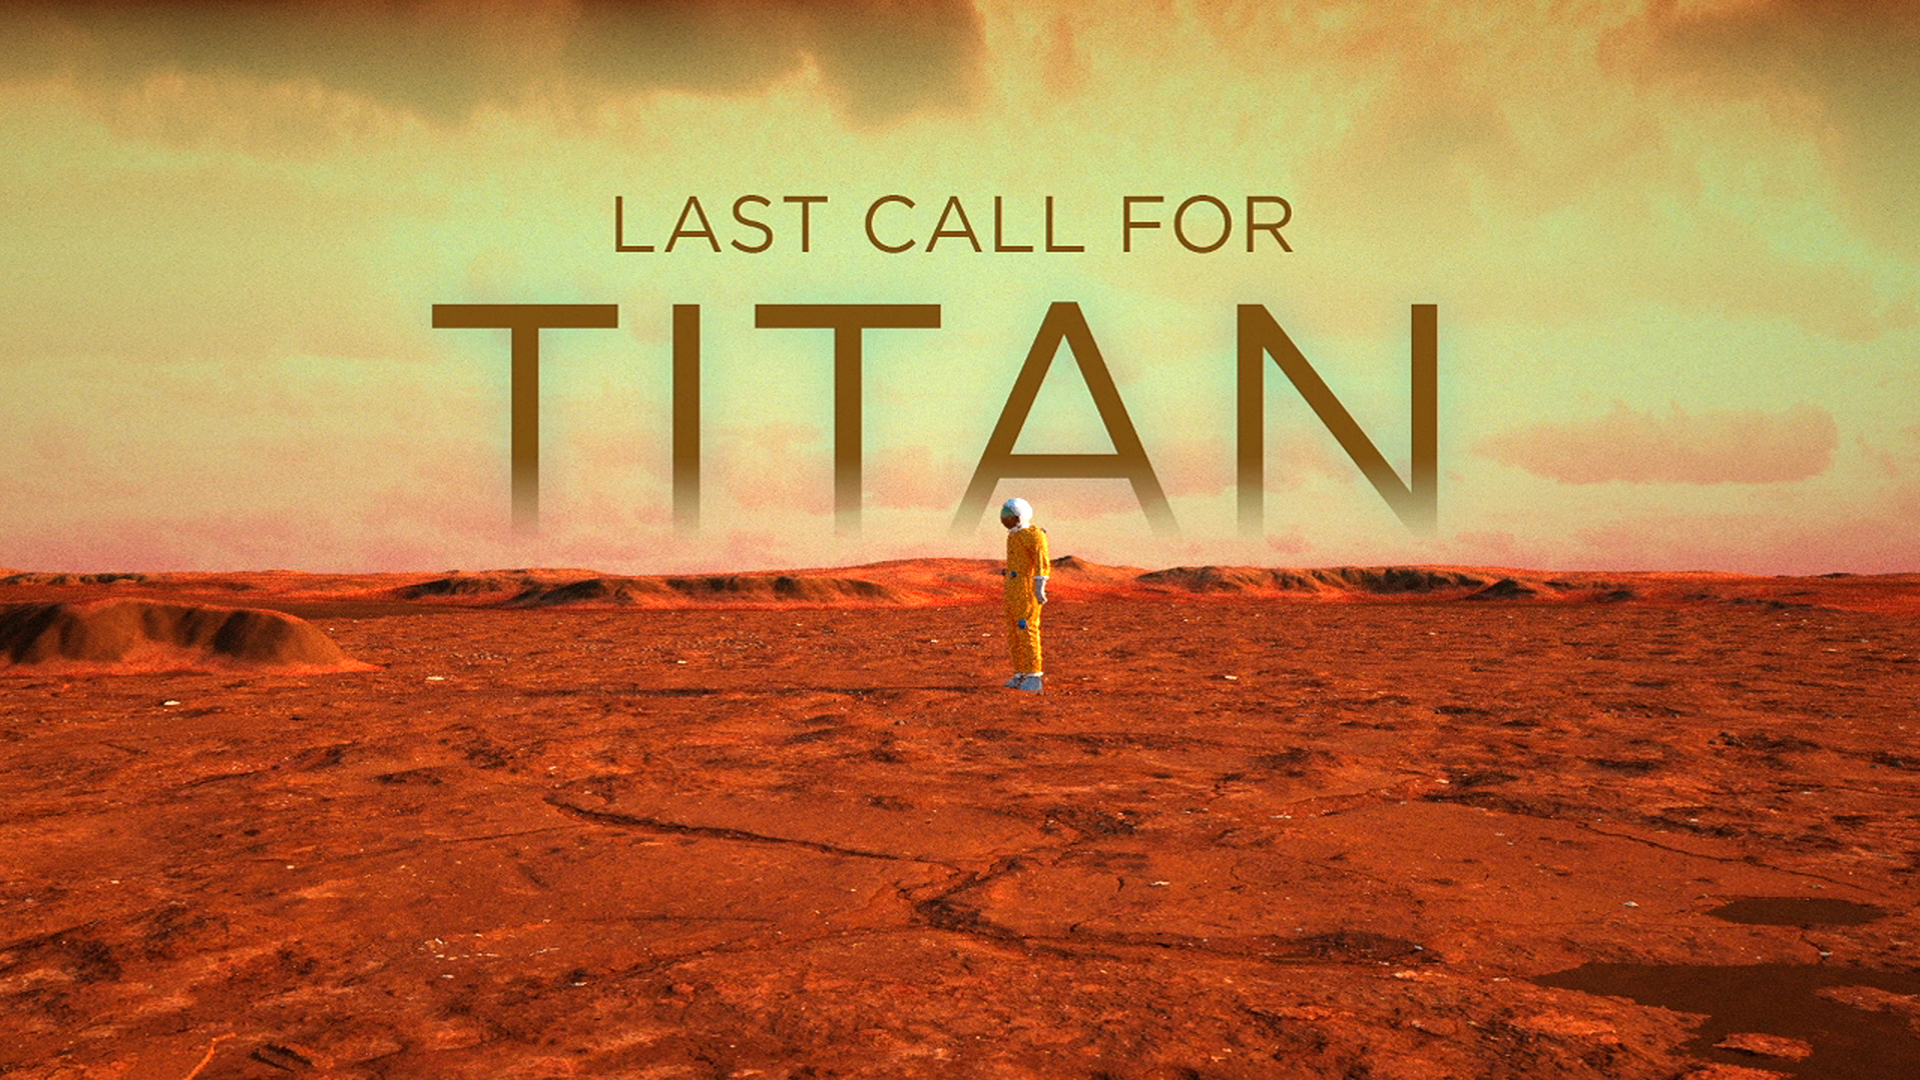 Last Call For Titan!